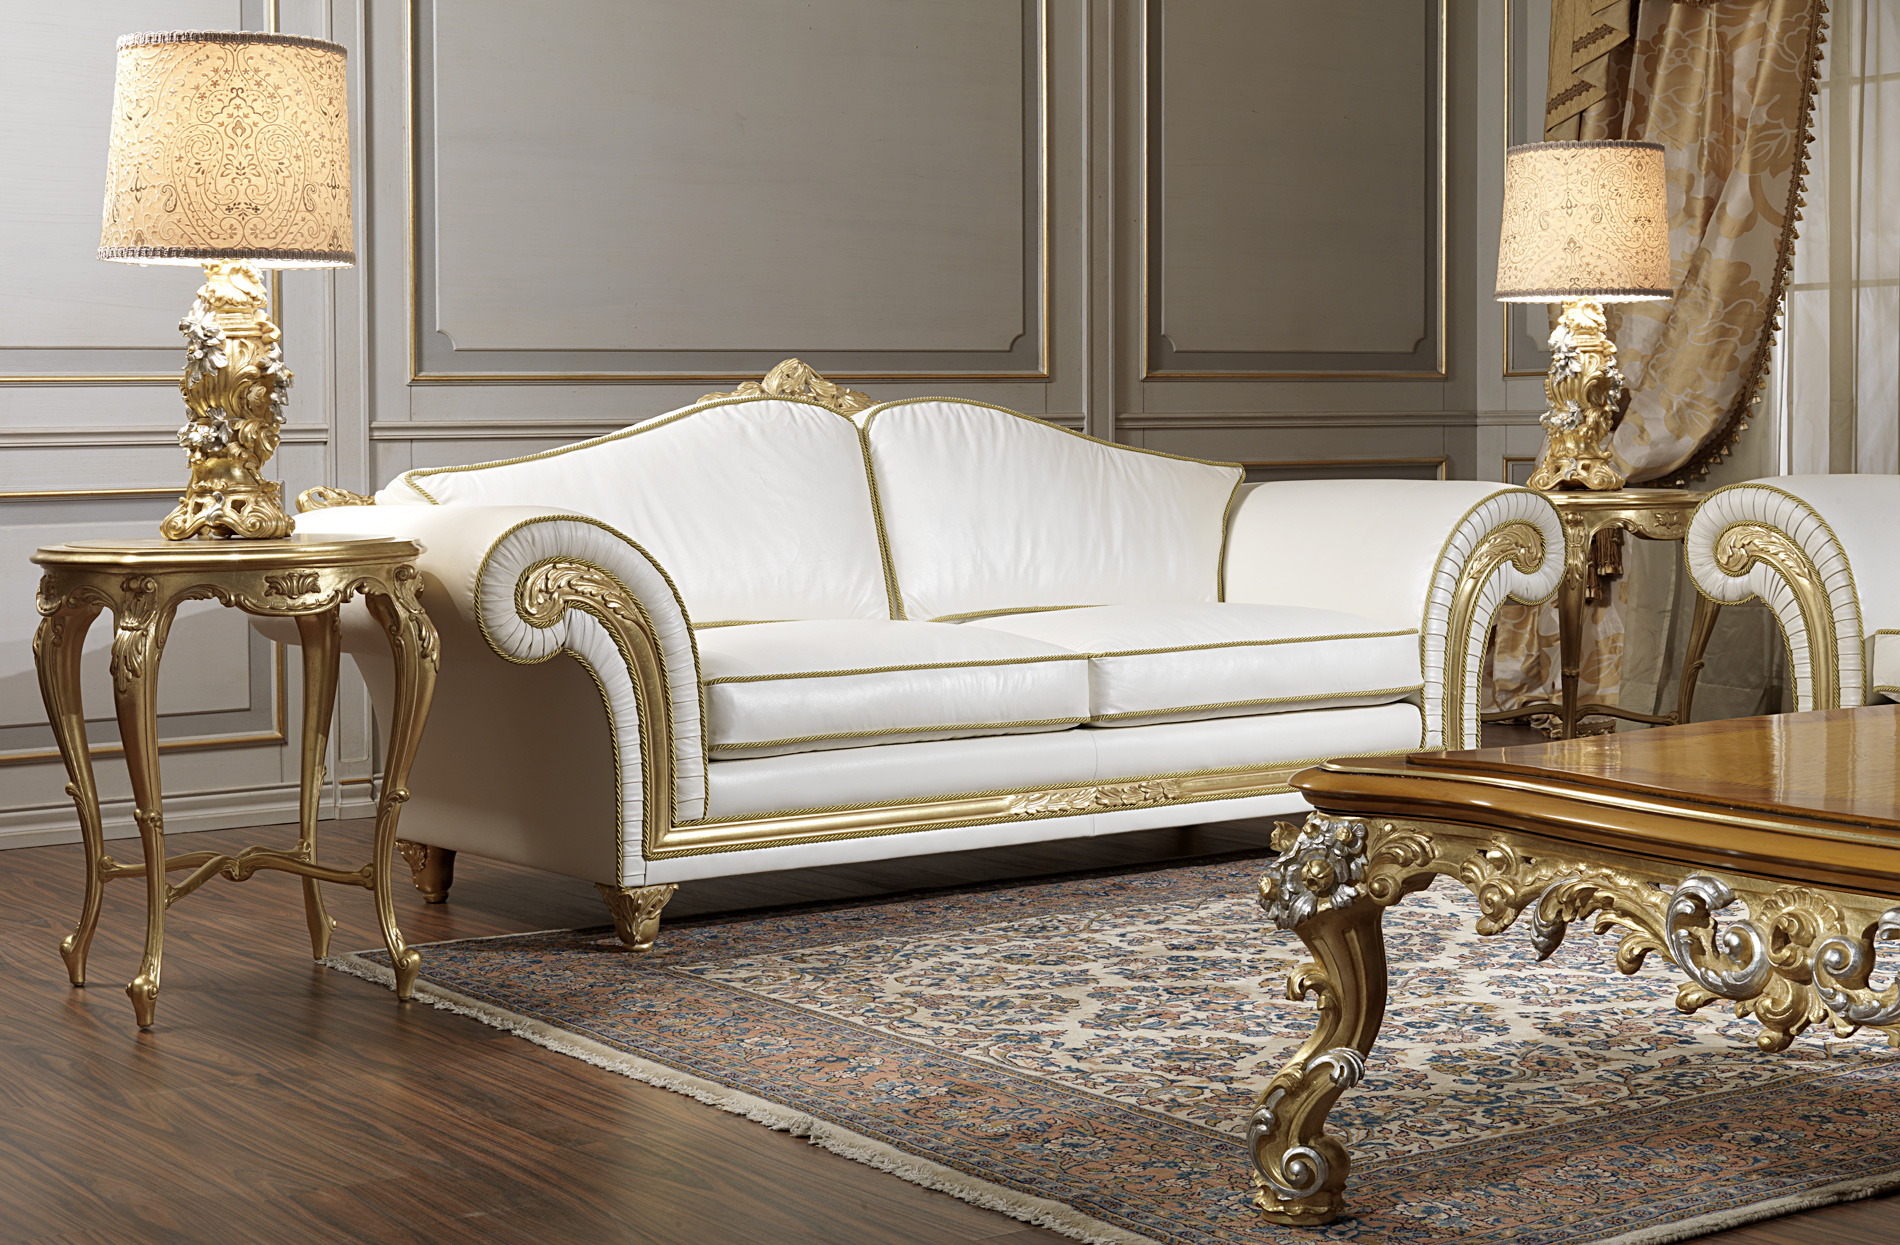 Luxury sofas in leather and gold